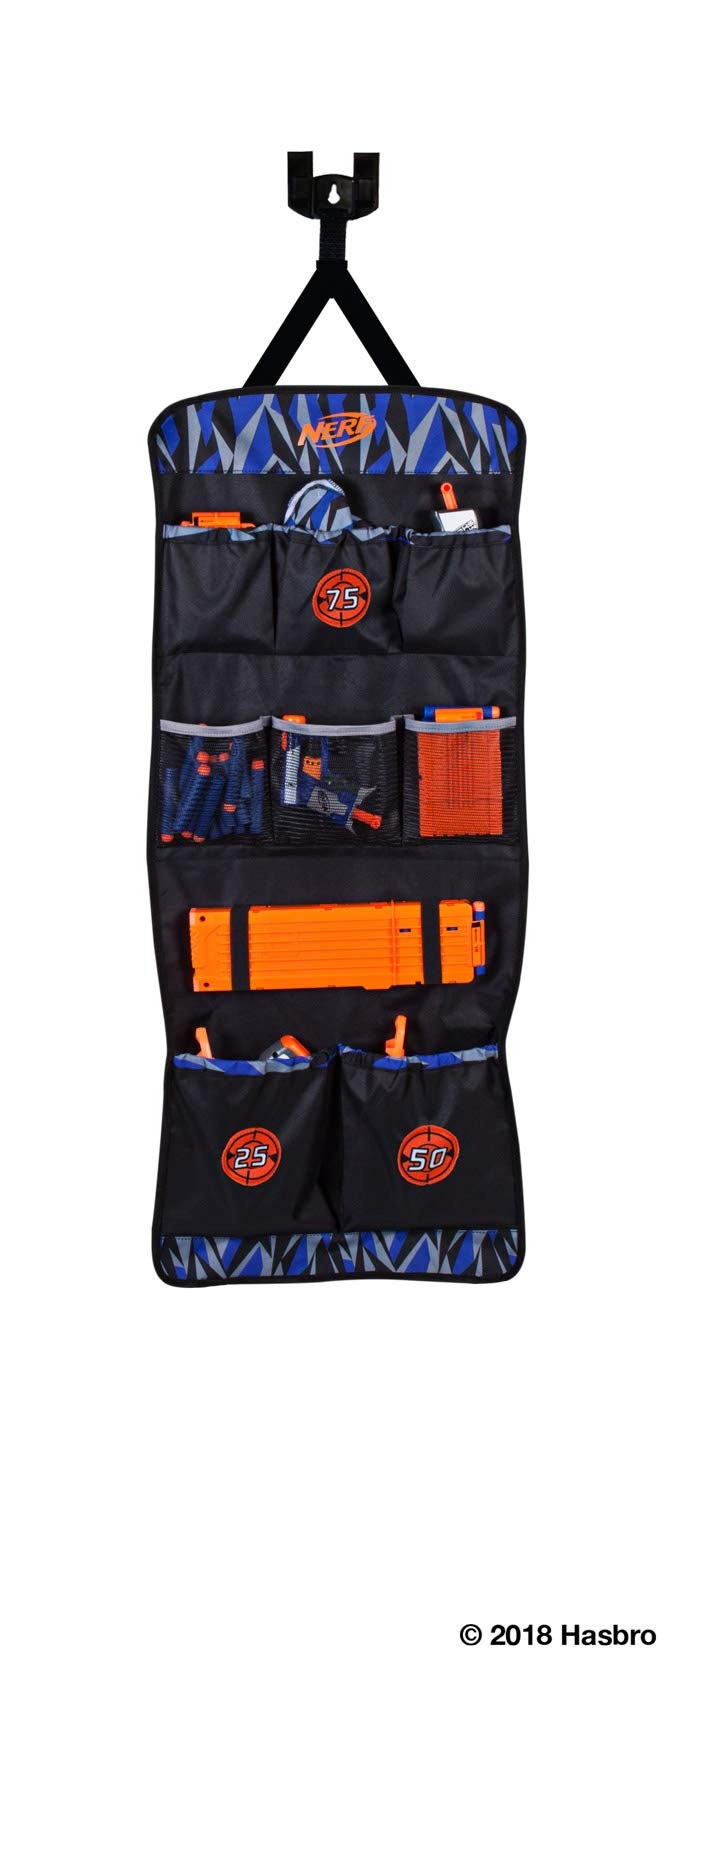 NERF Over-The-Door Storage by NERF